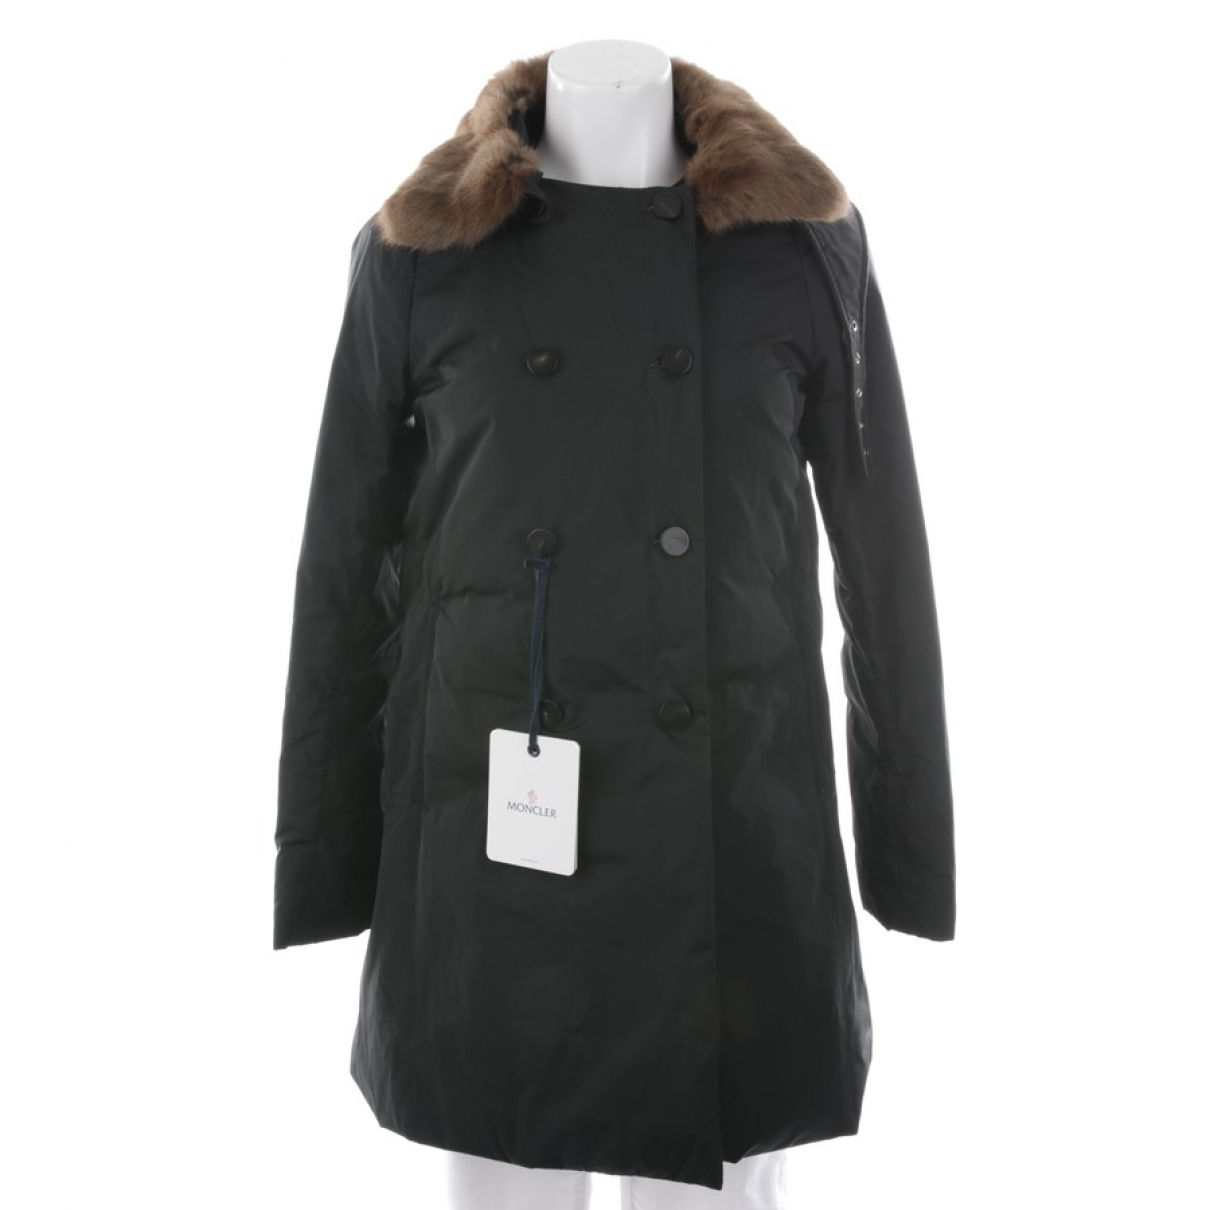 Moncler \N Black jacket for Women 36 FR